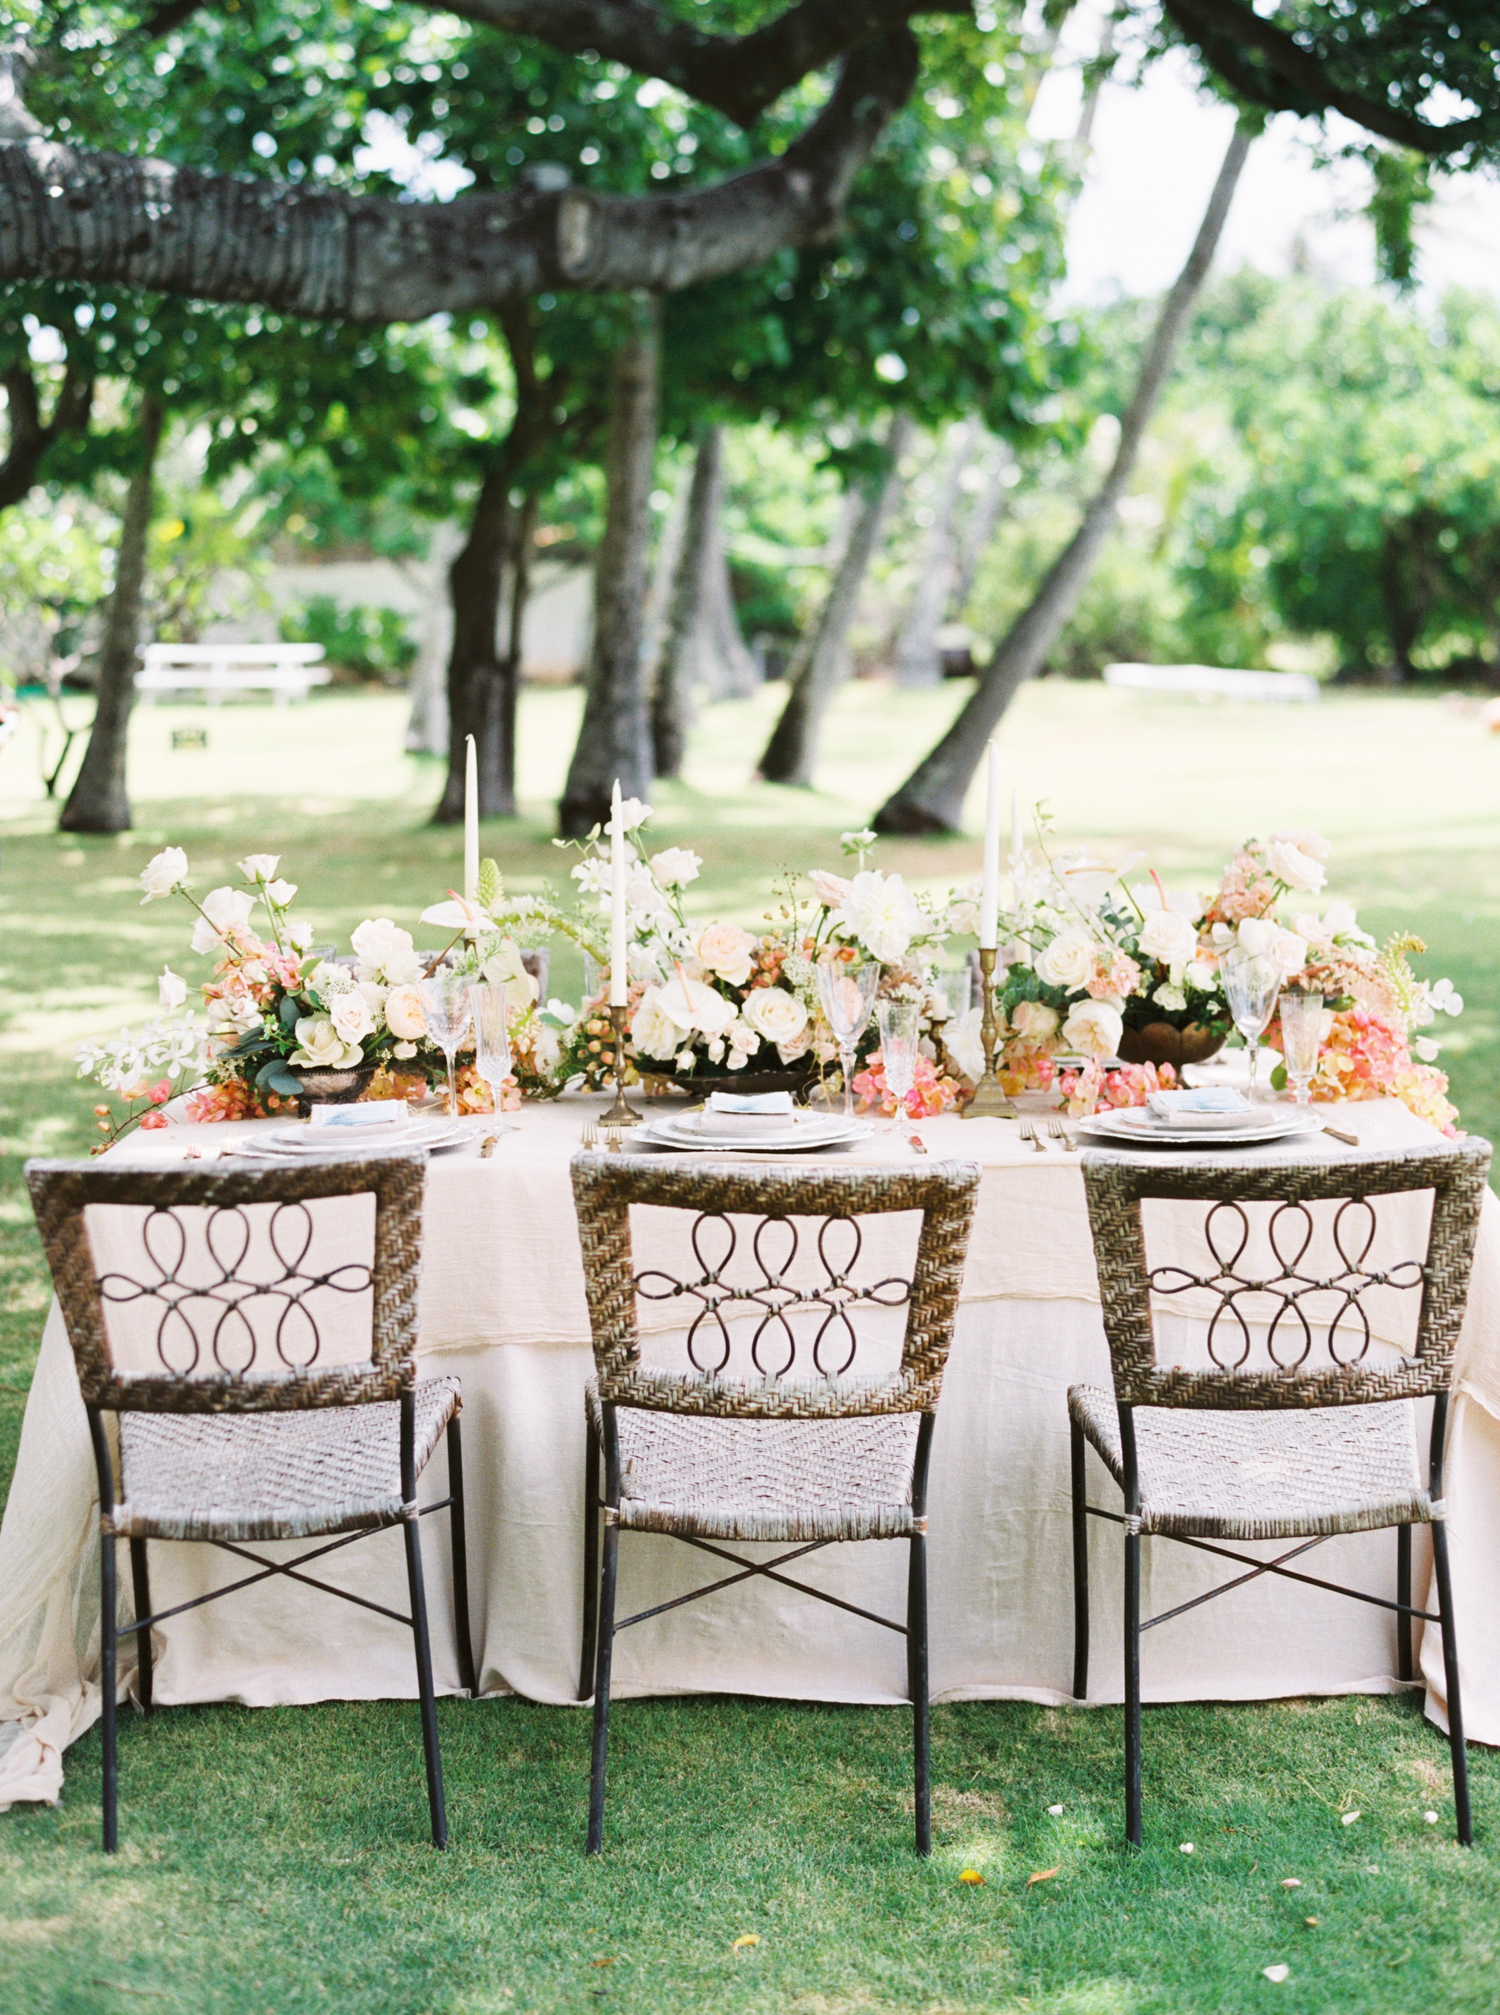 Wedding table setting in tropical Hawaii for a destination wedding